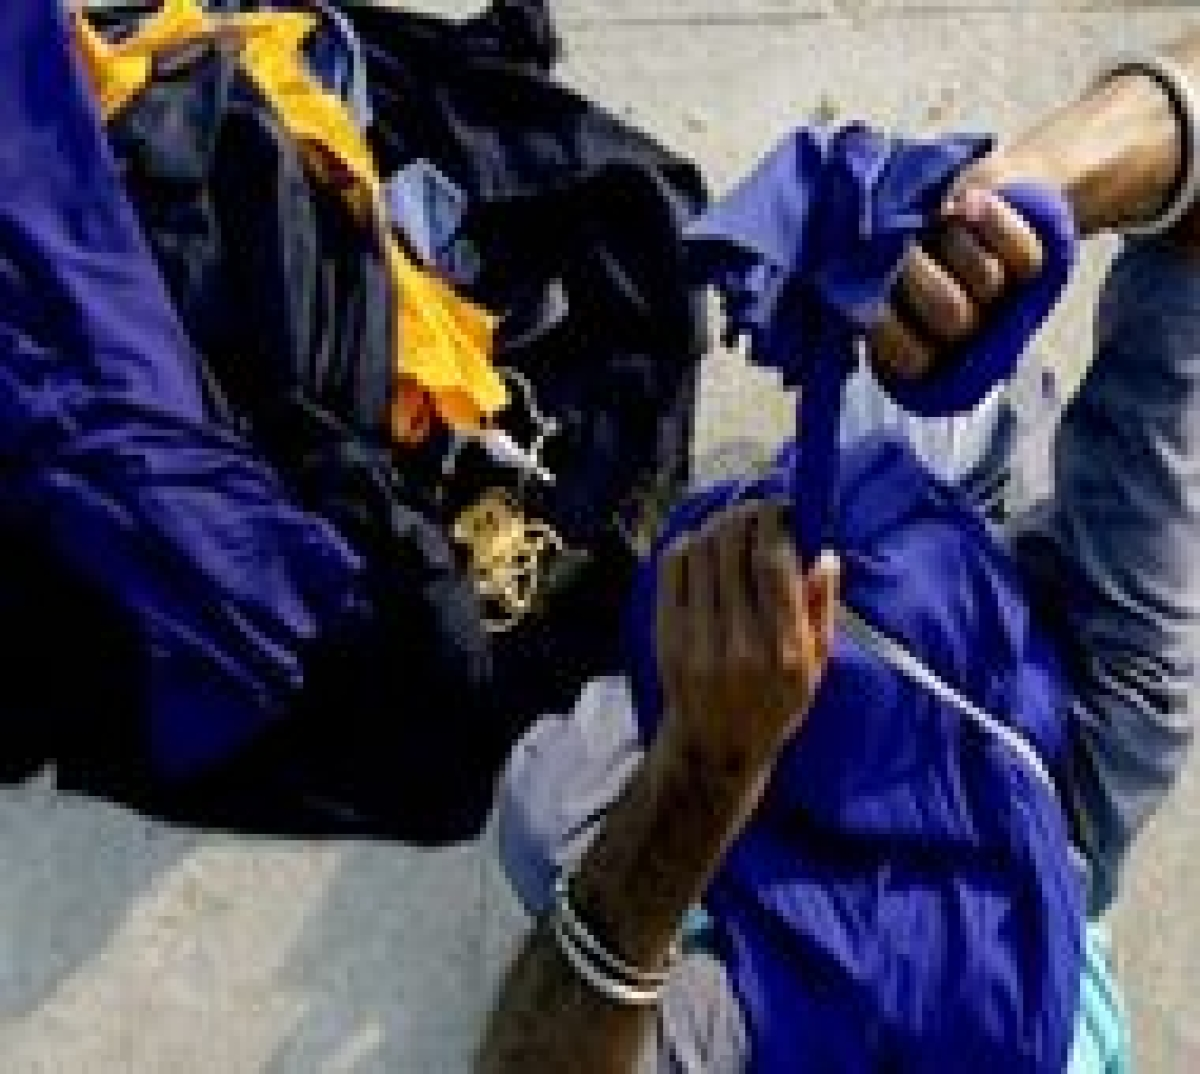 Sikh's turban desecrated in Pak, 6 booked under blasphemy law